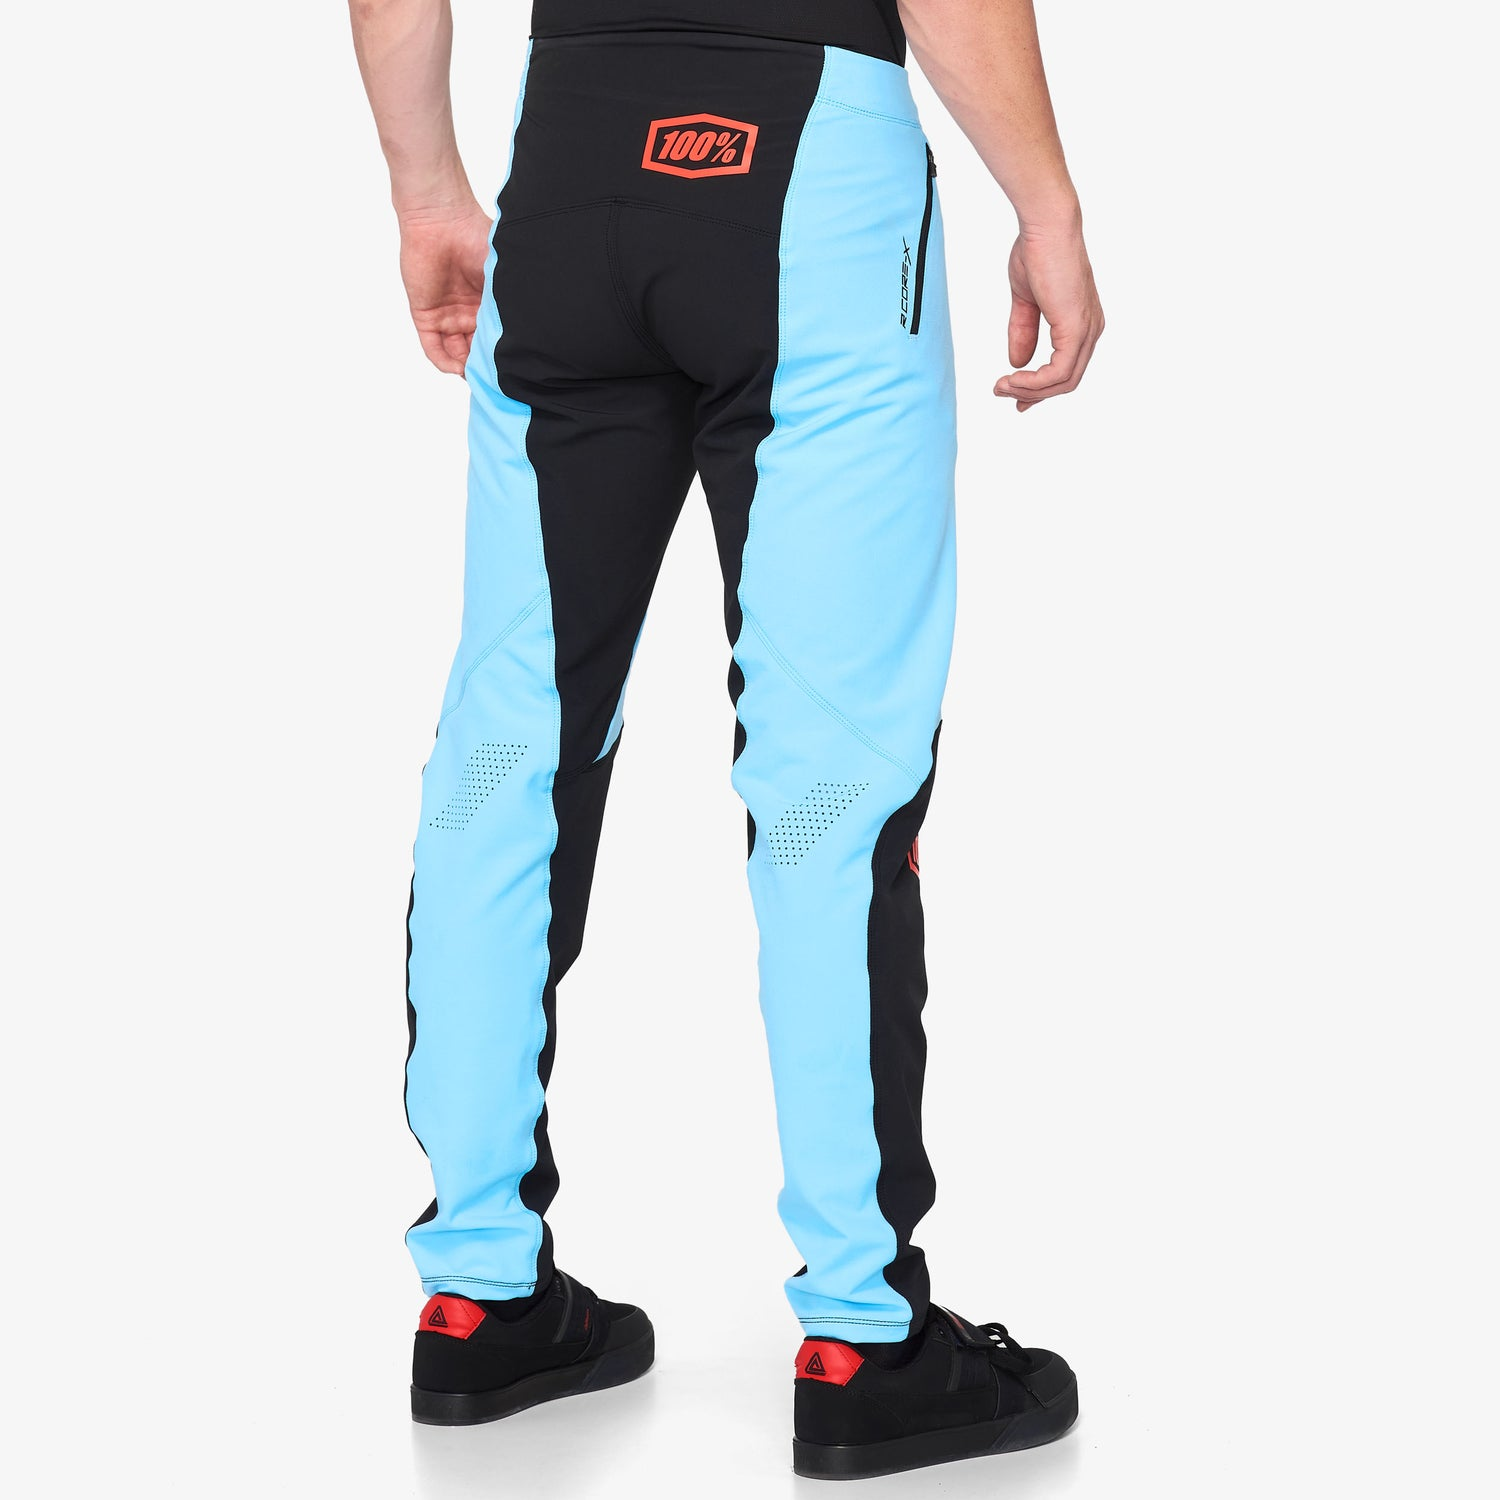 R-CORE X Pants Light Blue/Black